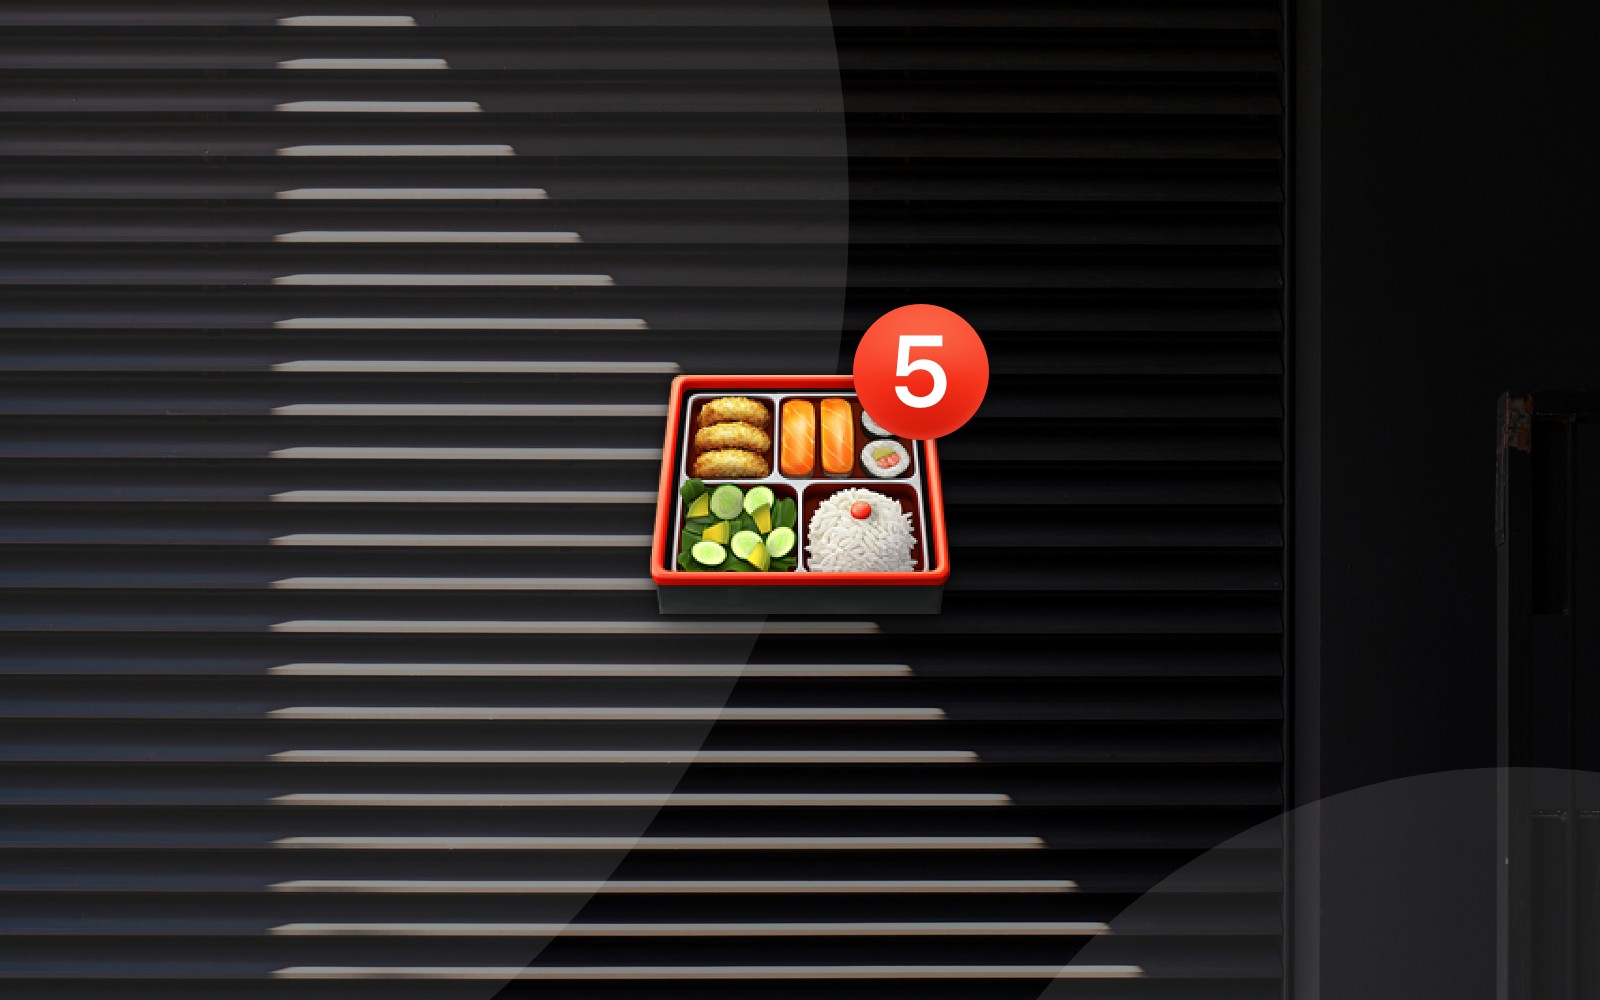 Bento box emoji with number 5 badge on abstract geometric background